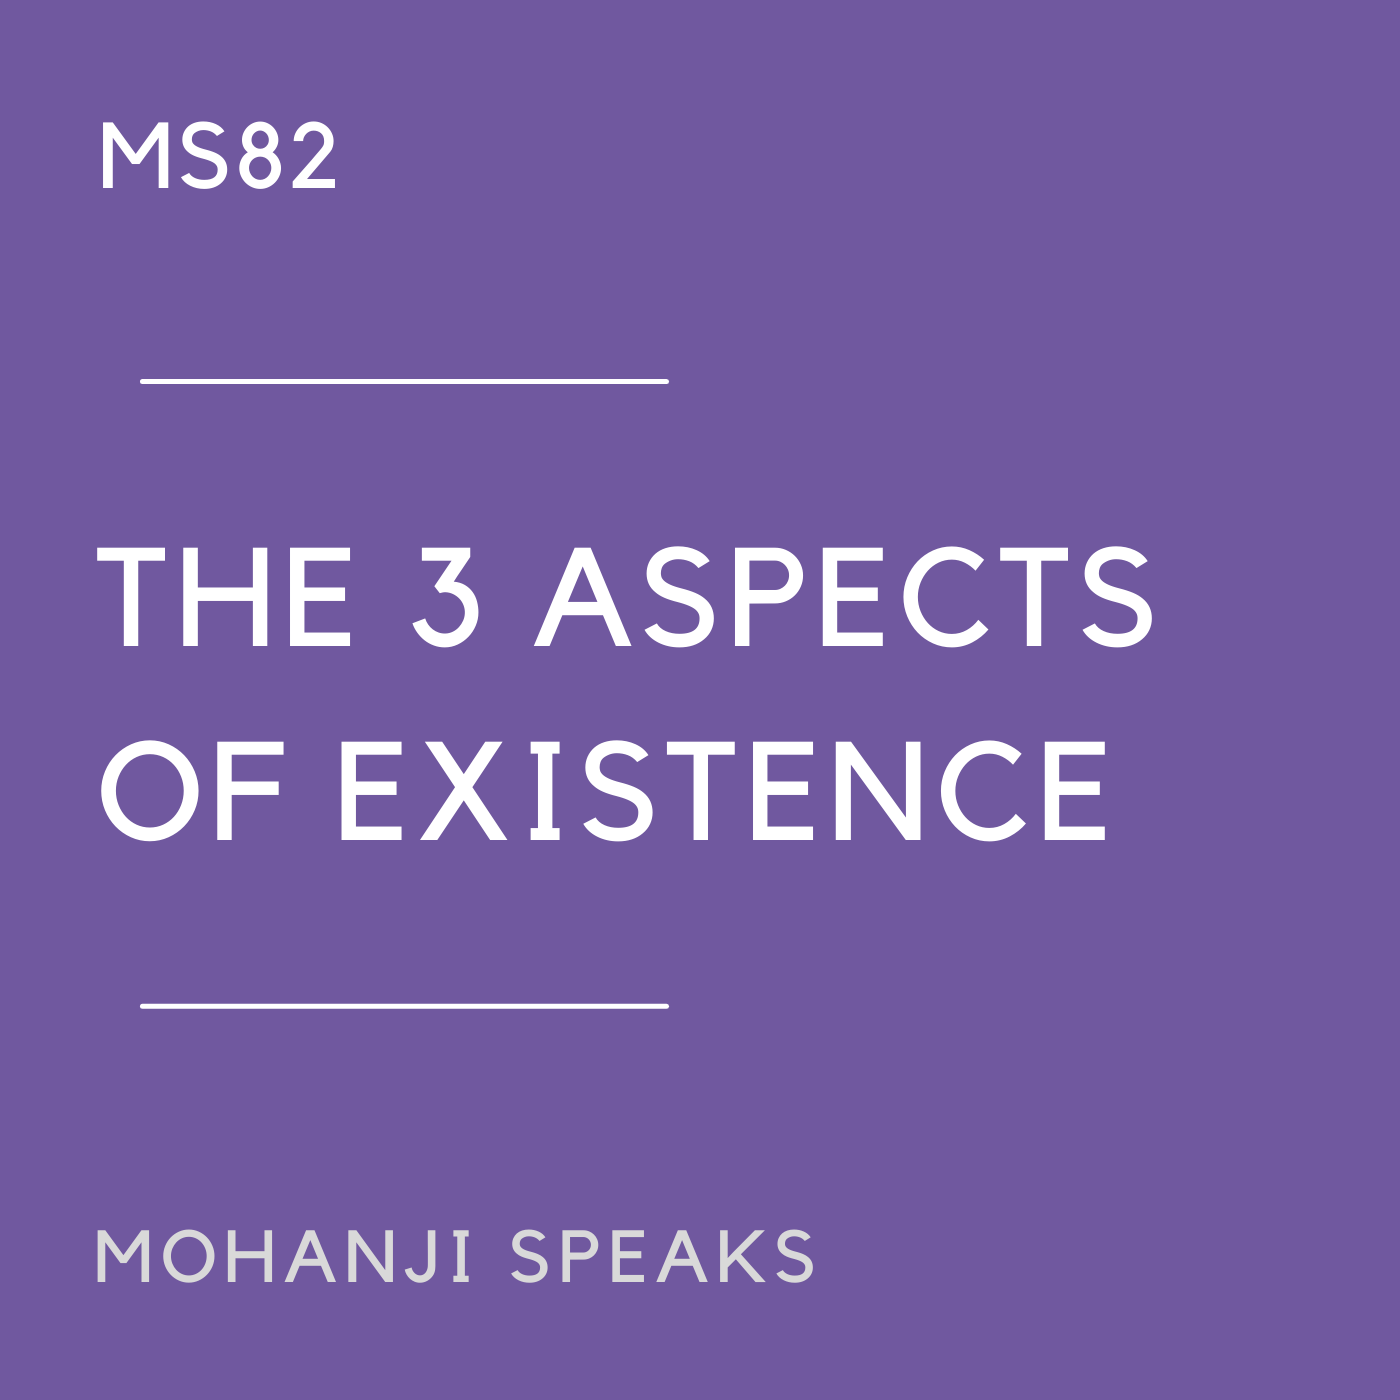 MS82 - The 3 Aspects of Existence